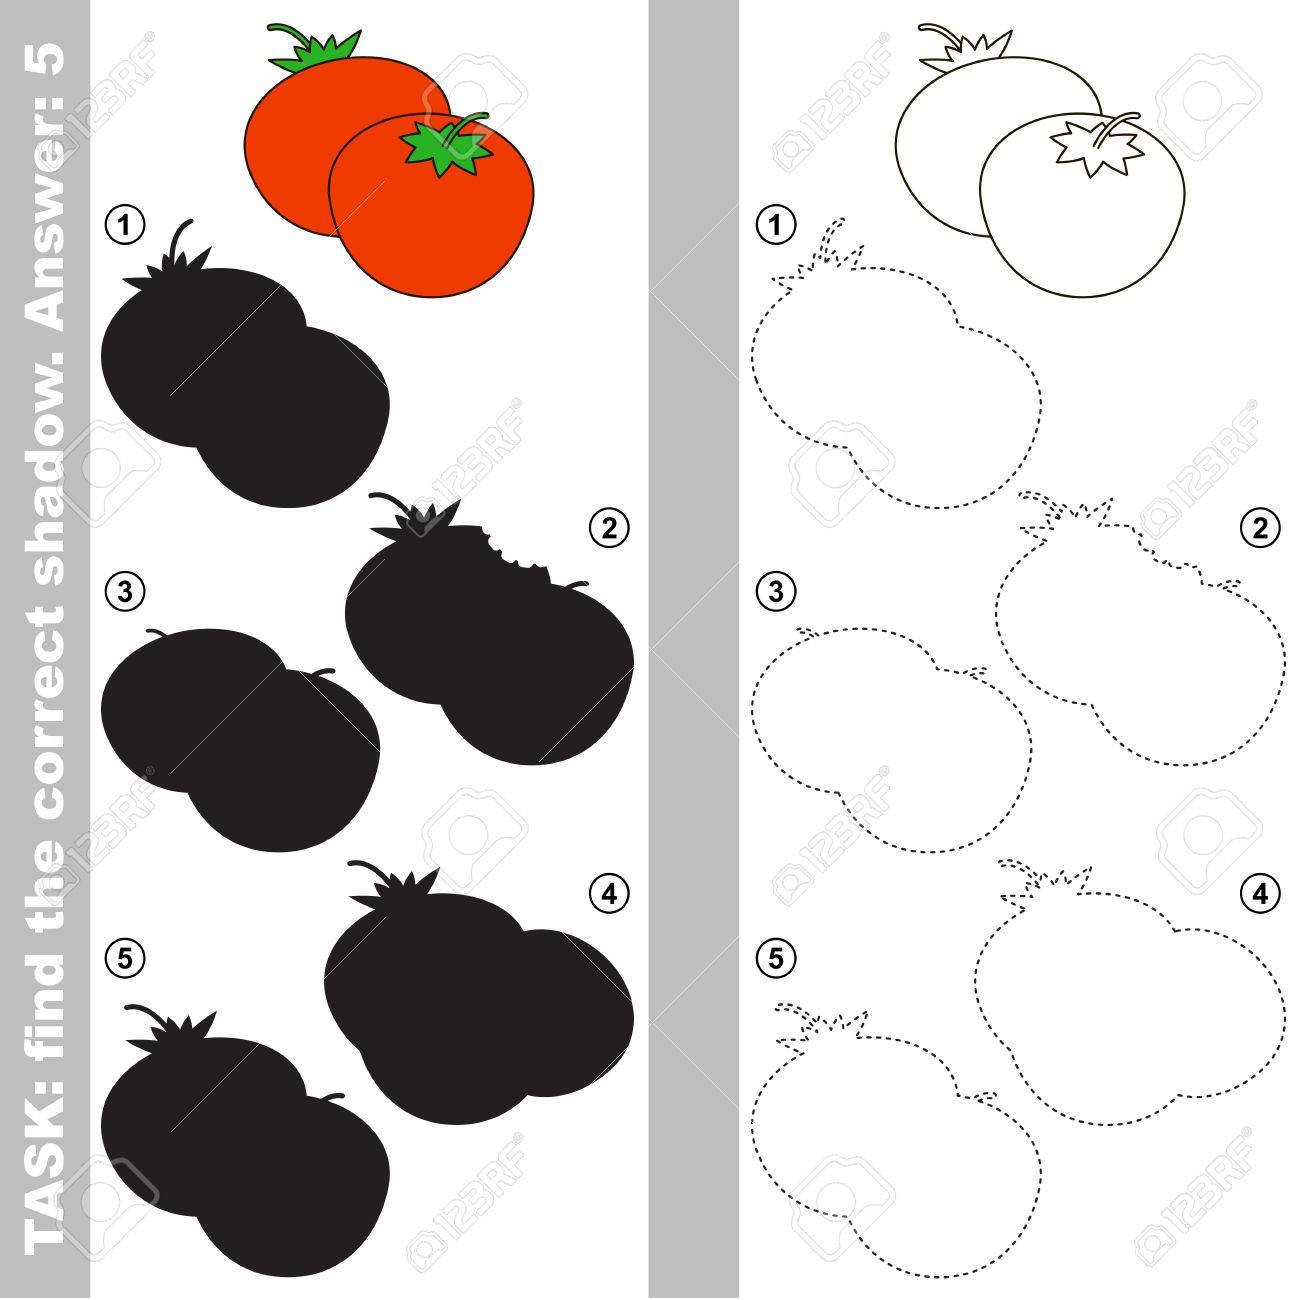 Tomato With Different Shadows To Find The Correct One Compare Royalty Free Cliparts Vectors And Stock Illustration Image 75746493 His first upload dates back to october 22, 2013. tomato with different shadows to find the correct one compare